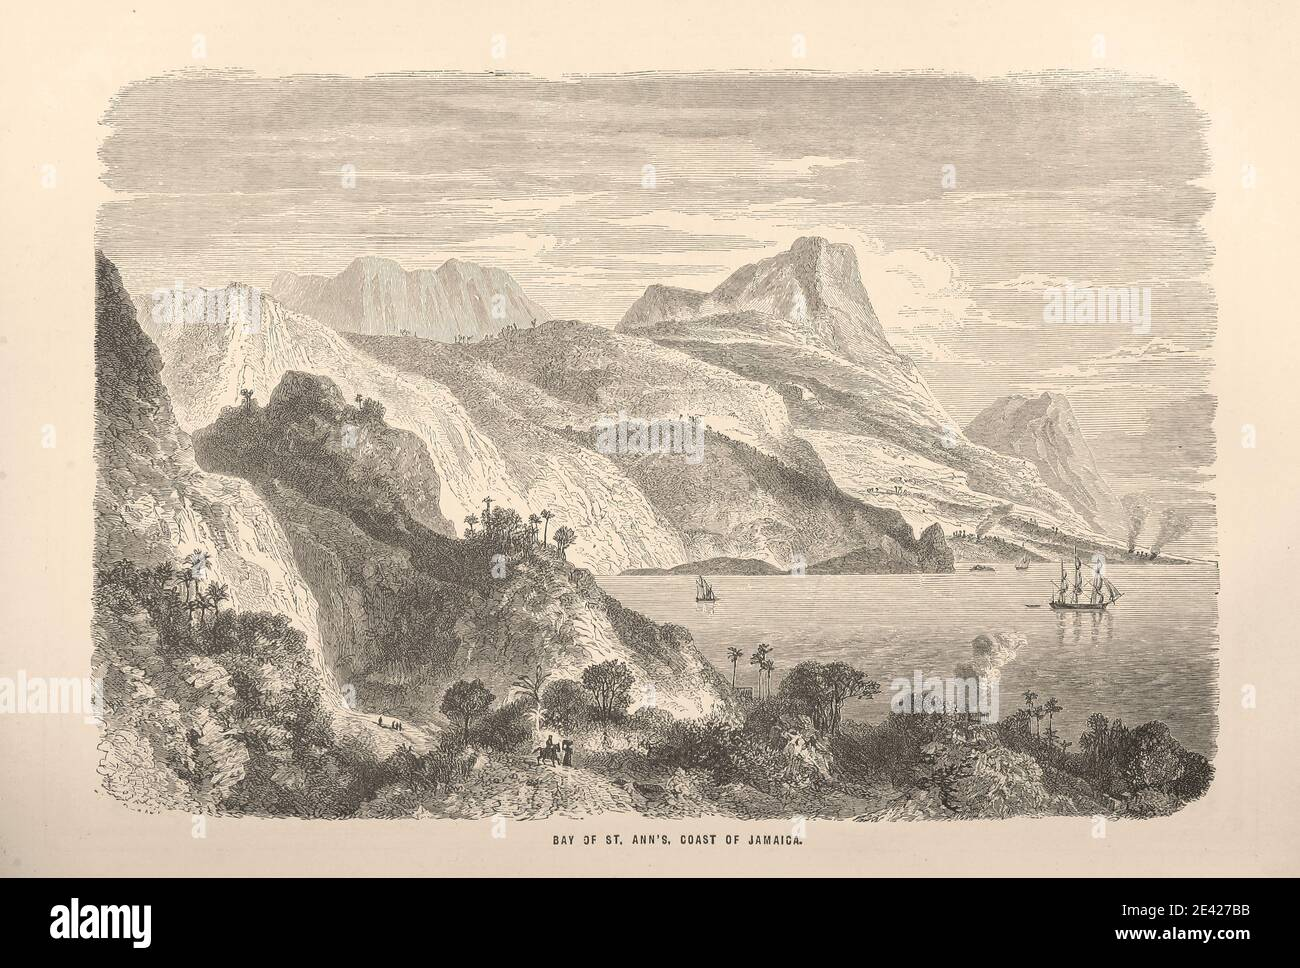 """BAY OF ST ANN COAST OF JAMAICA Image taken from page 269 of 'Wanderings in every Clime; or, voyages, travels, and adventures all round the world ... A sequel to """"The Earth delineated with pen and pencil"""" ... With ... illustrations, etc' Stock Photo"""